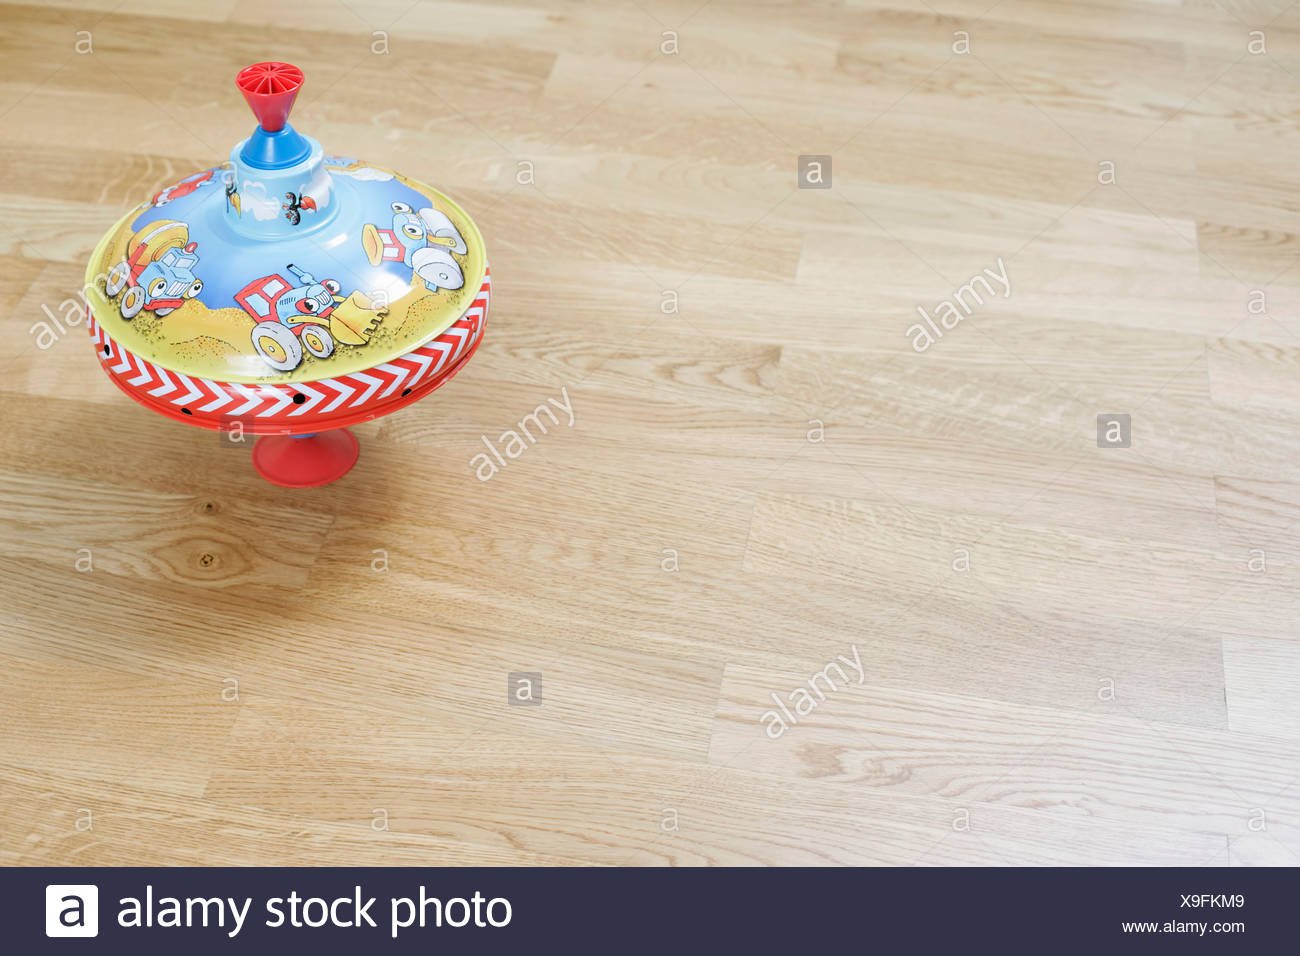 Spinning-top - Stock Image